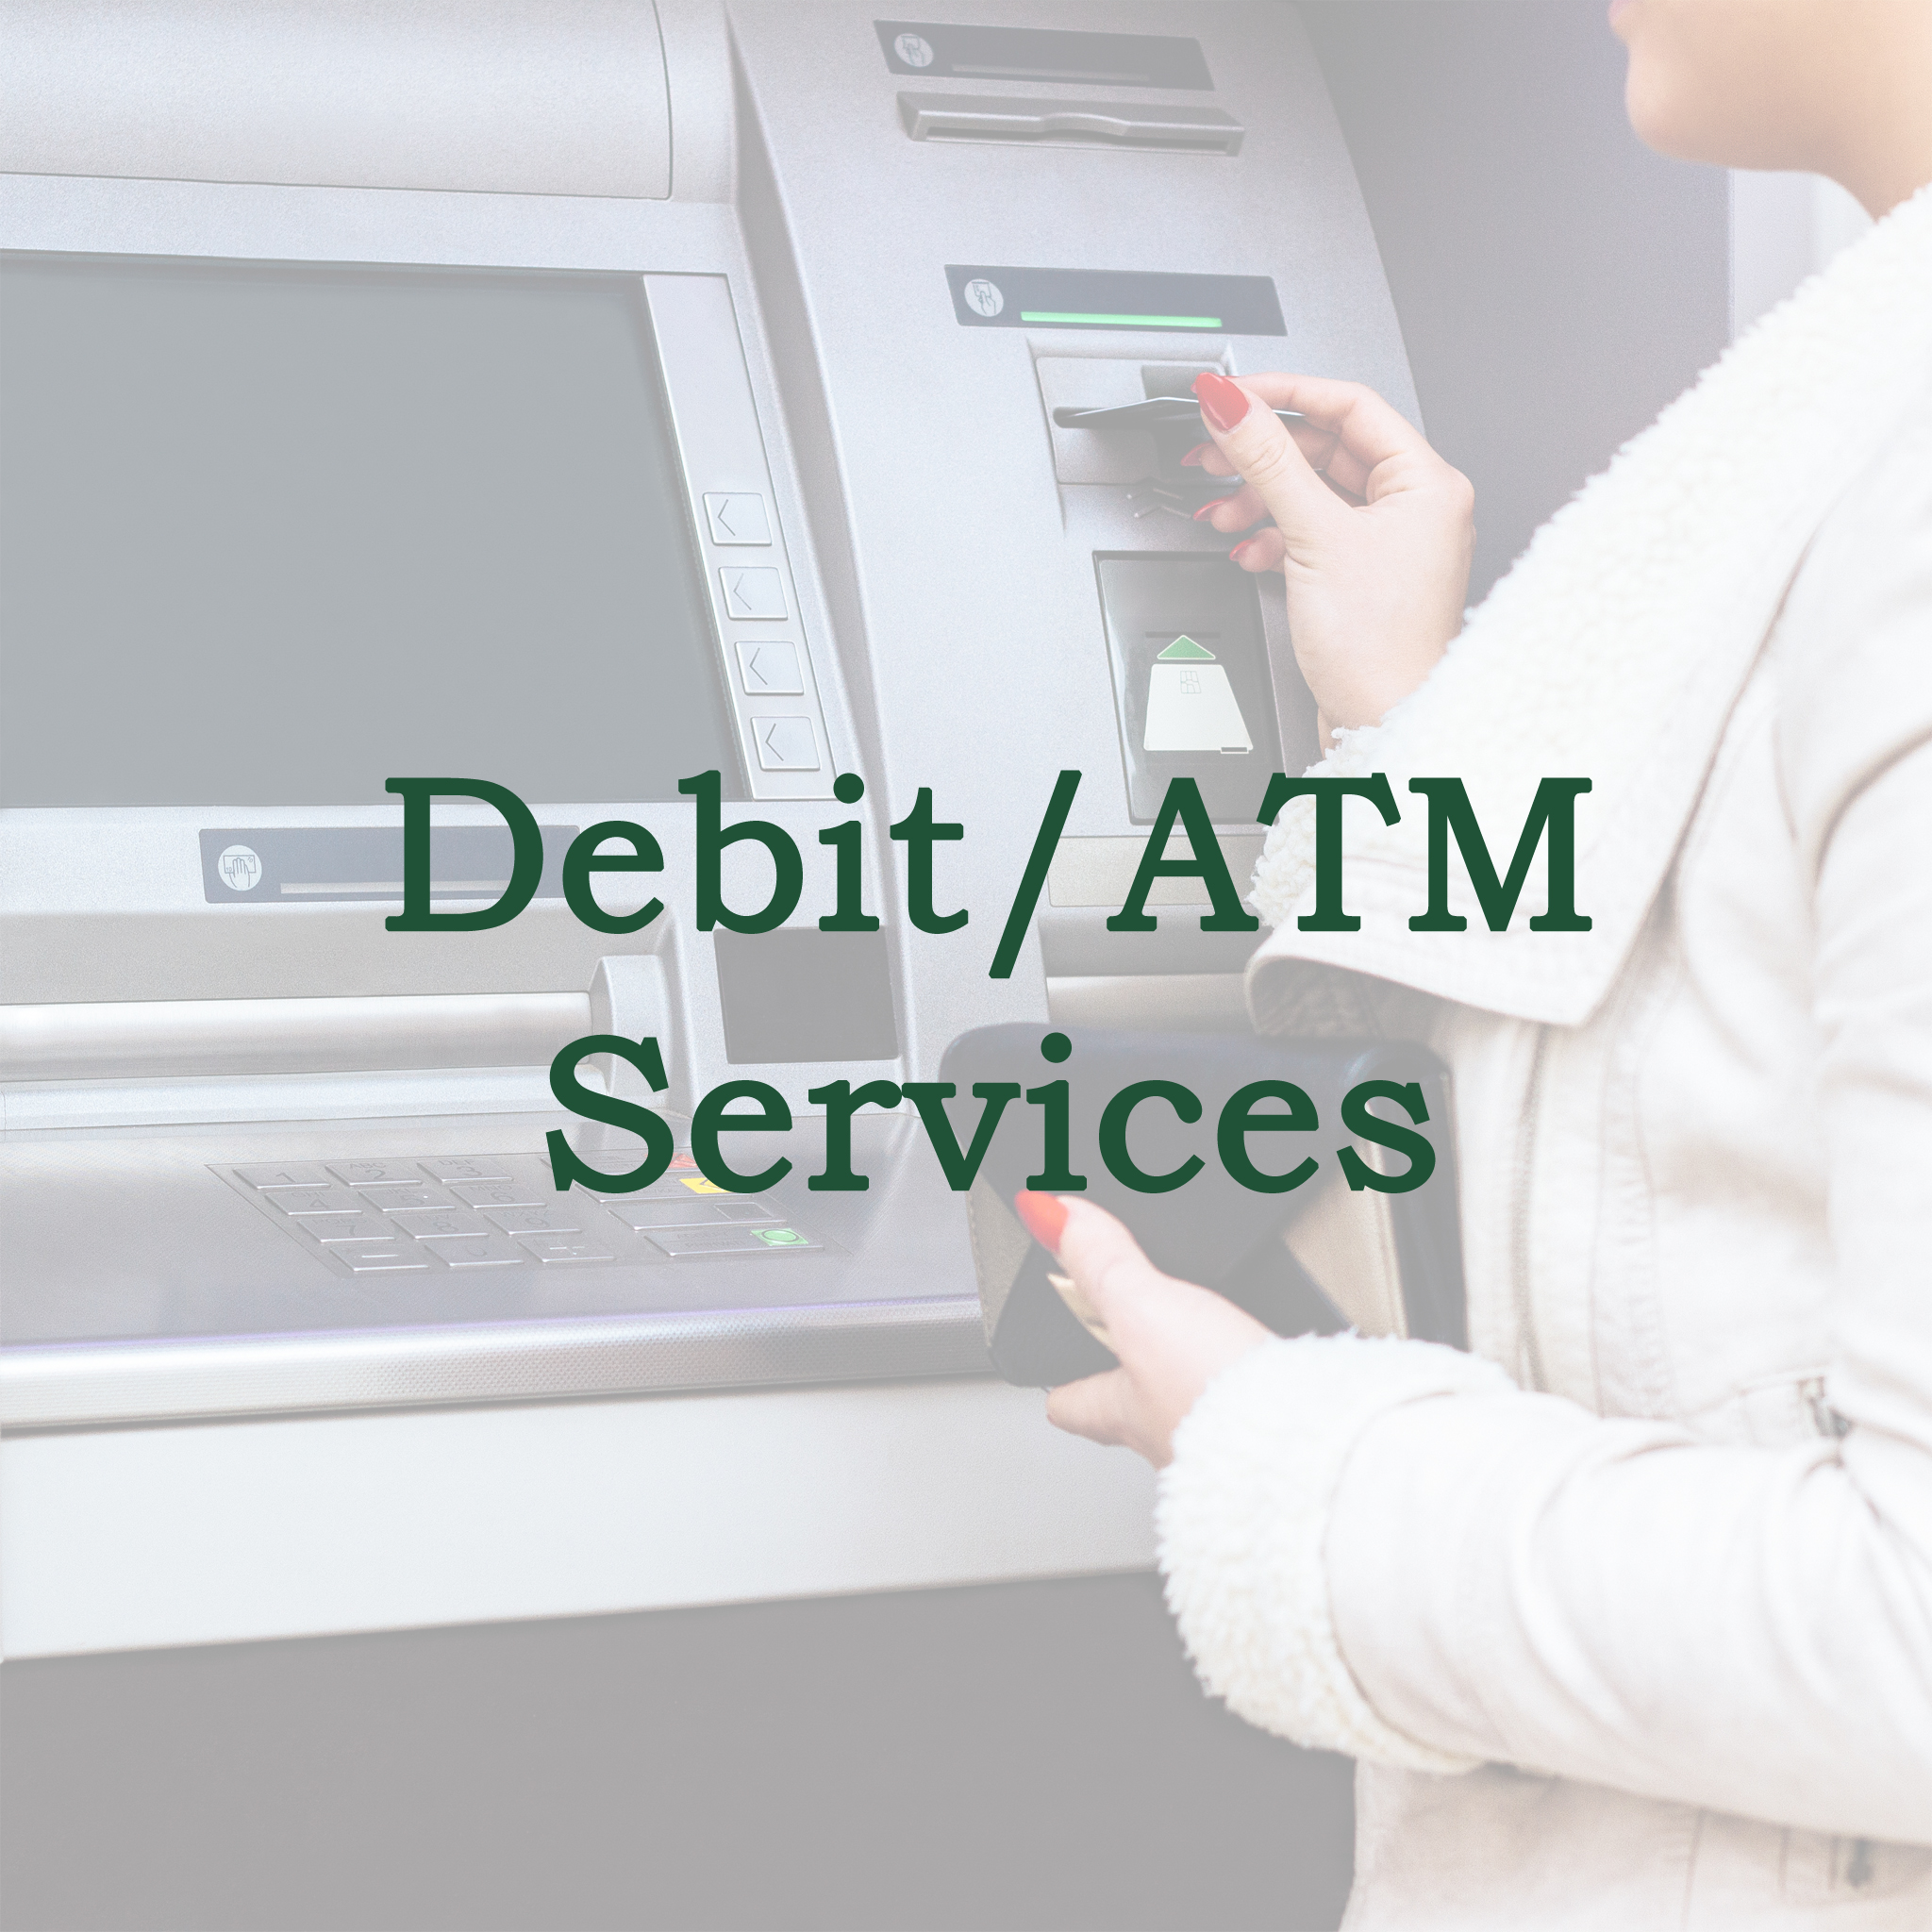 image link to the Debit and ATM card application